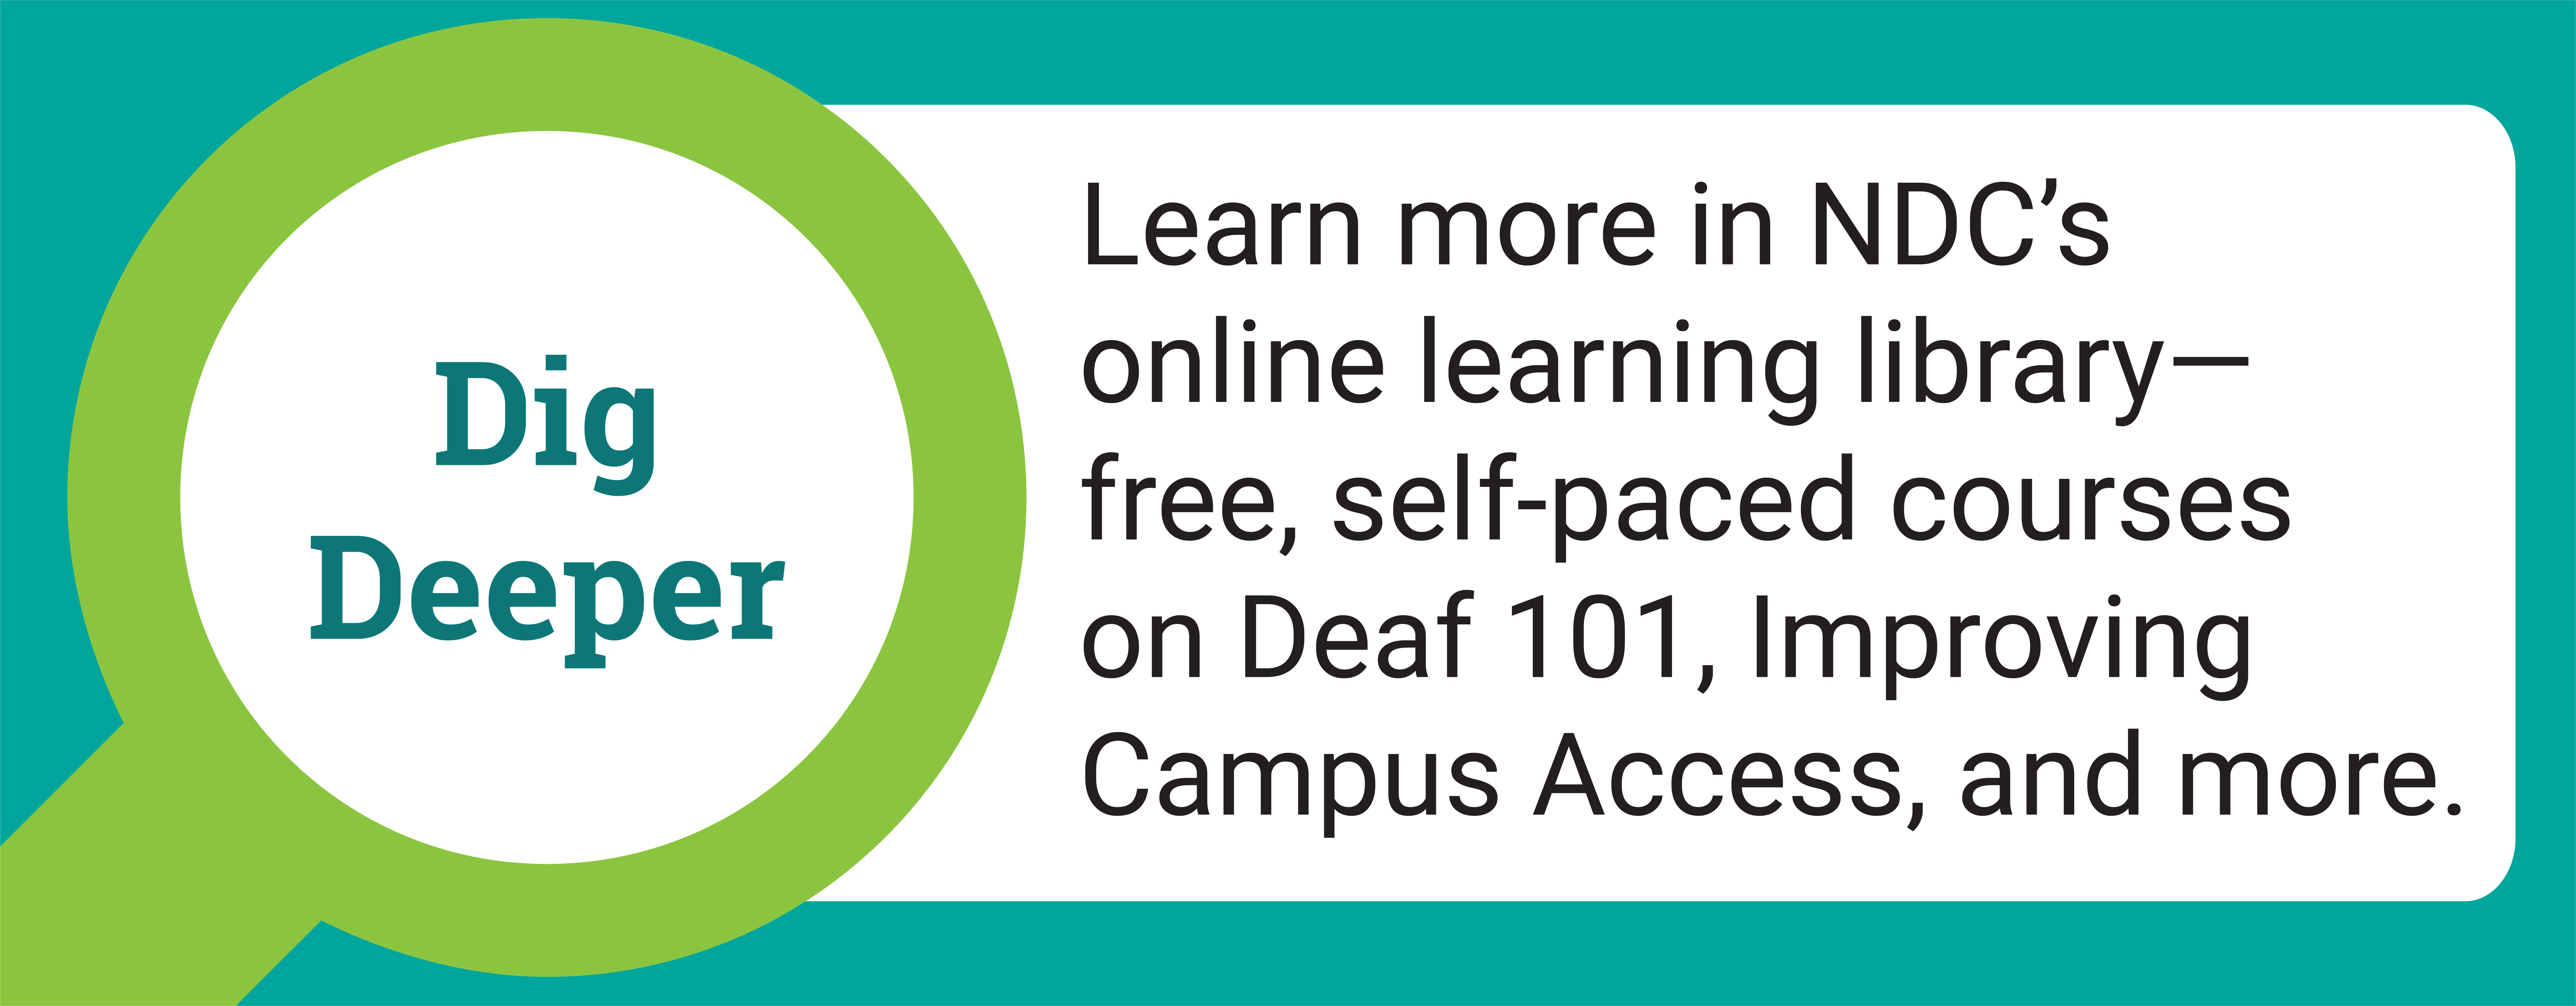 Text: Dig Deeper. Learn more in NDC's online learning library — free, self-paced courses on Deaf 101, Improving Campus Access, and more, with a teal border and lime magnifying glass.